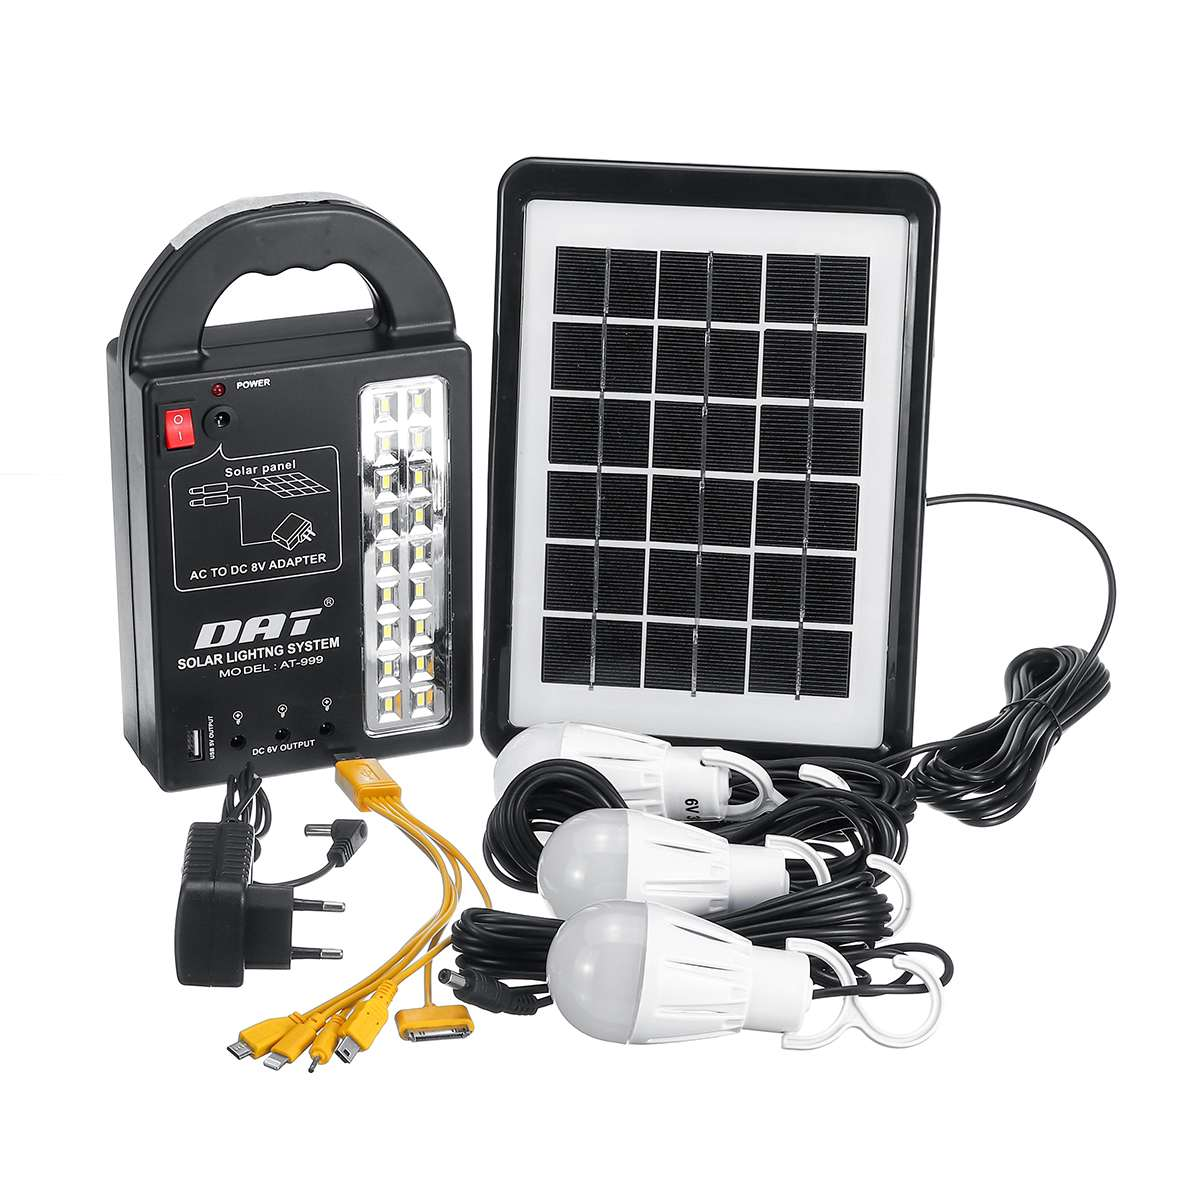 Solar Power Generator with 3 LED Bulbs and USB charging Interface Ideal for Indoor/ Outdoor Lighting